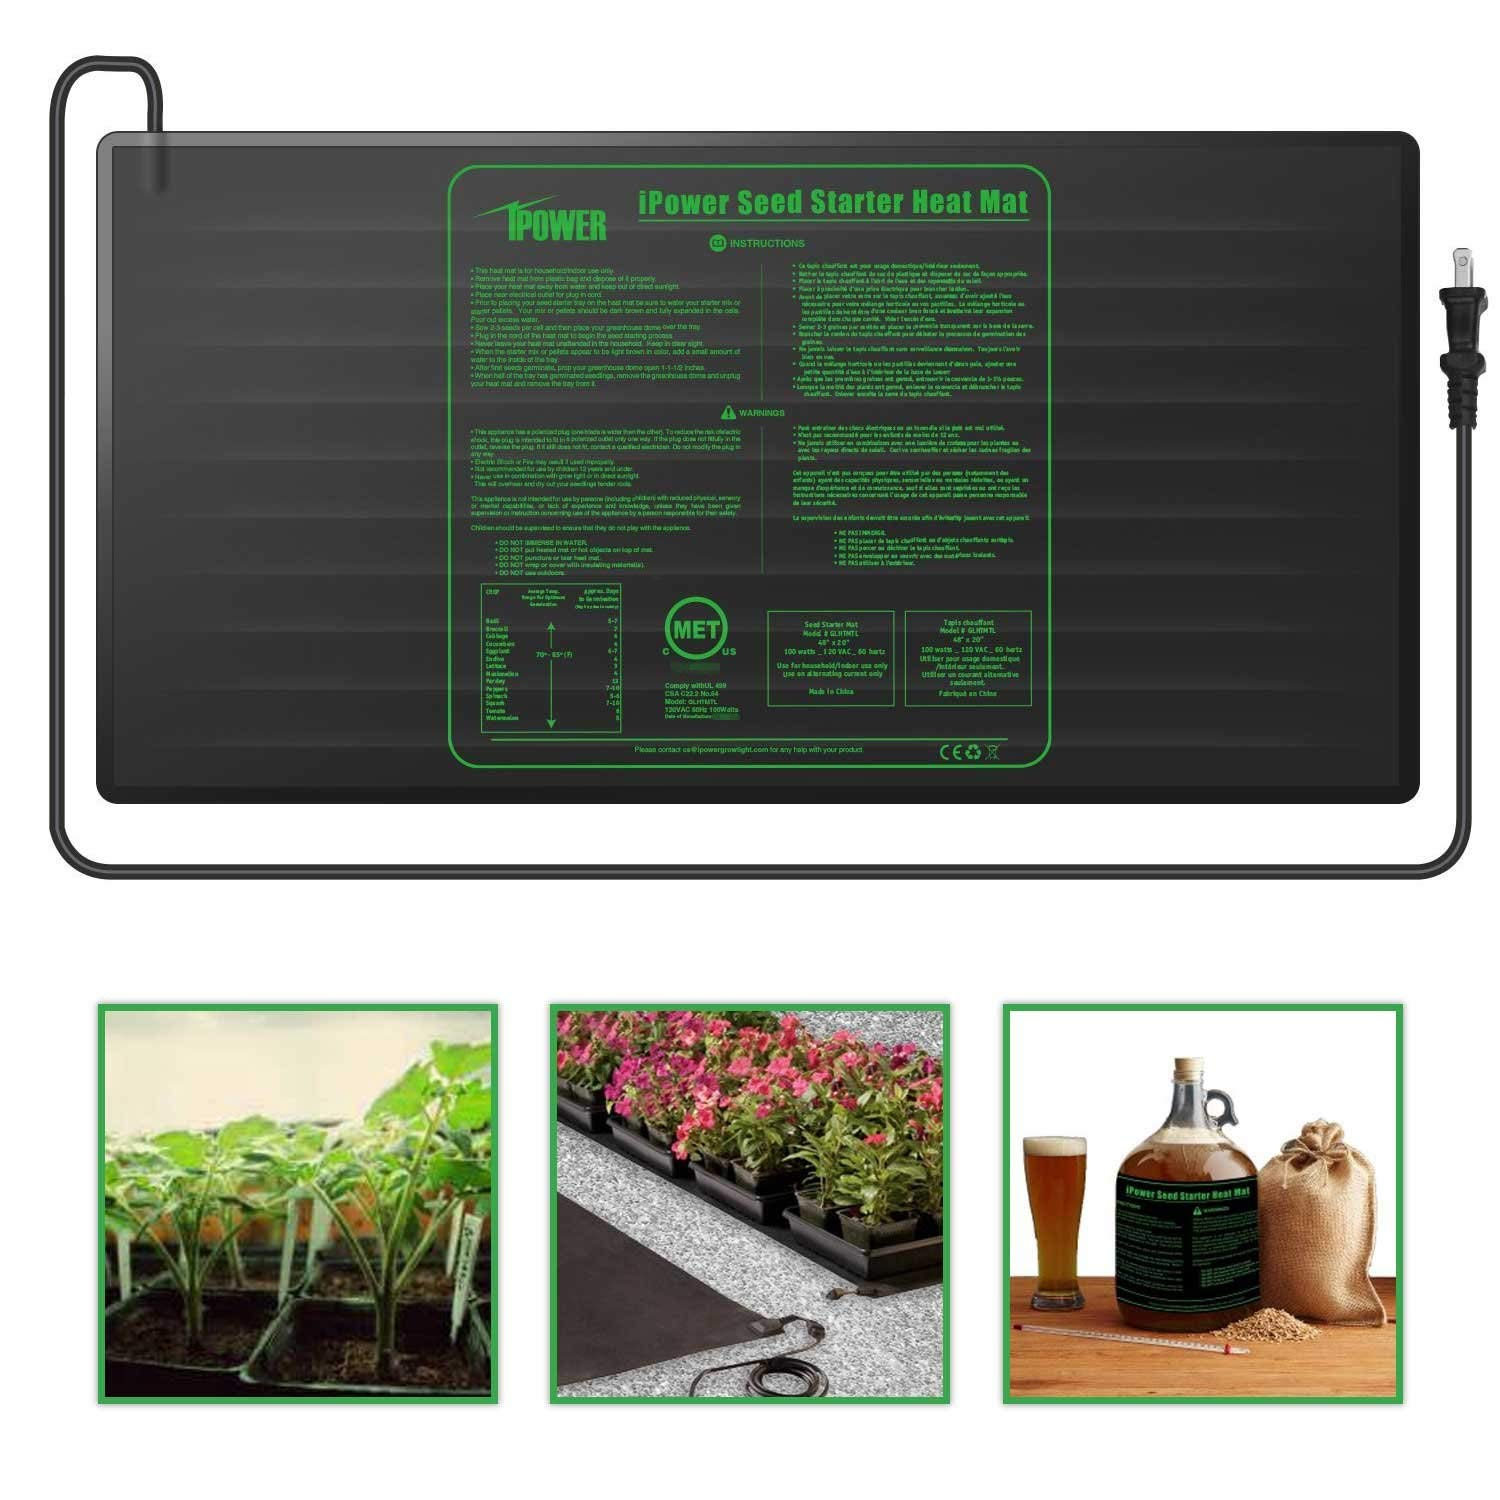 "iPower Durable Waterproof Seedling Heat Mat 48"" x 20"" Warm Hydroponic Heating Pad MET Standard"